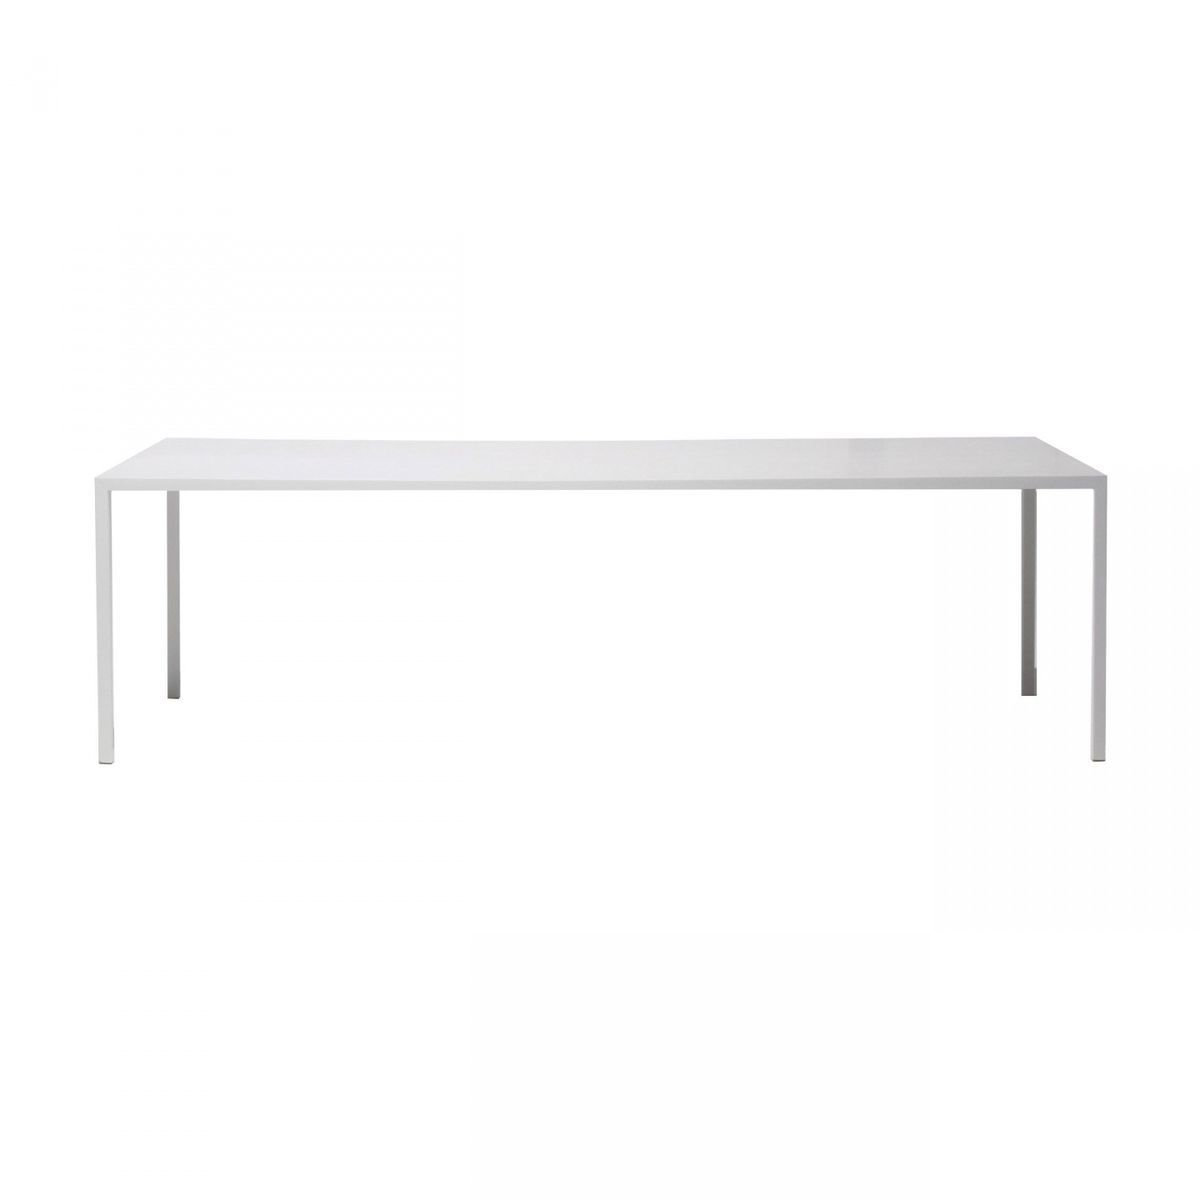 Amazing photo of MDF Italia Tense Table with #646368 color and 1200x1200 pixels